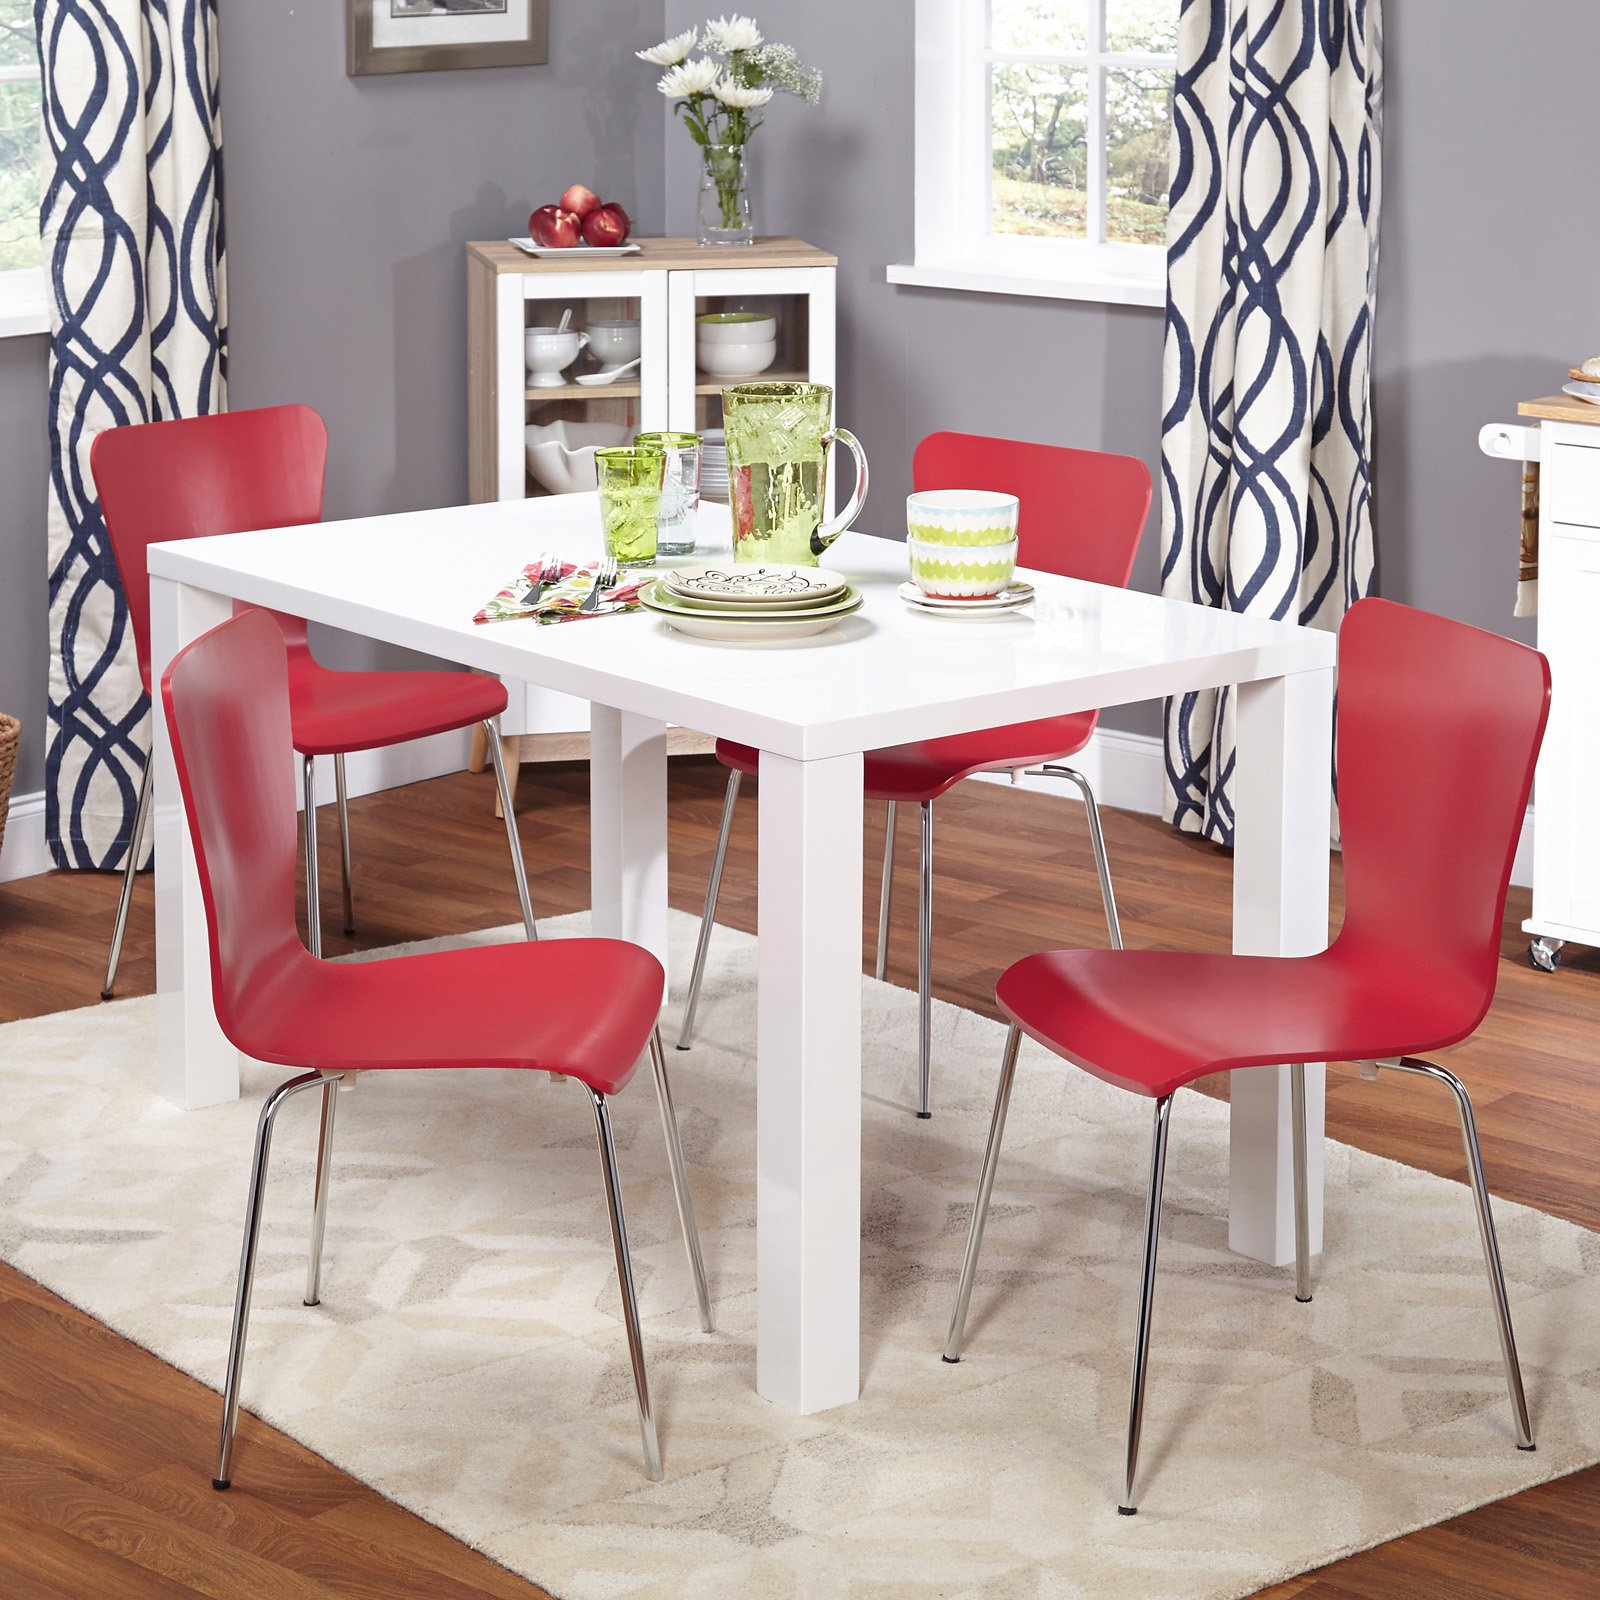 Felix 5-Piece Dining Set, Multiple Colors